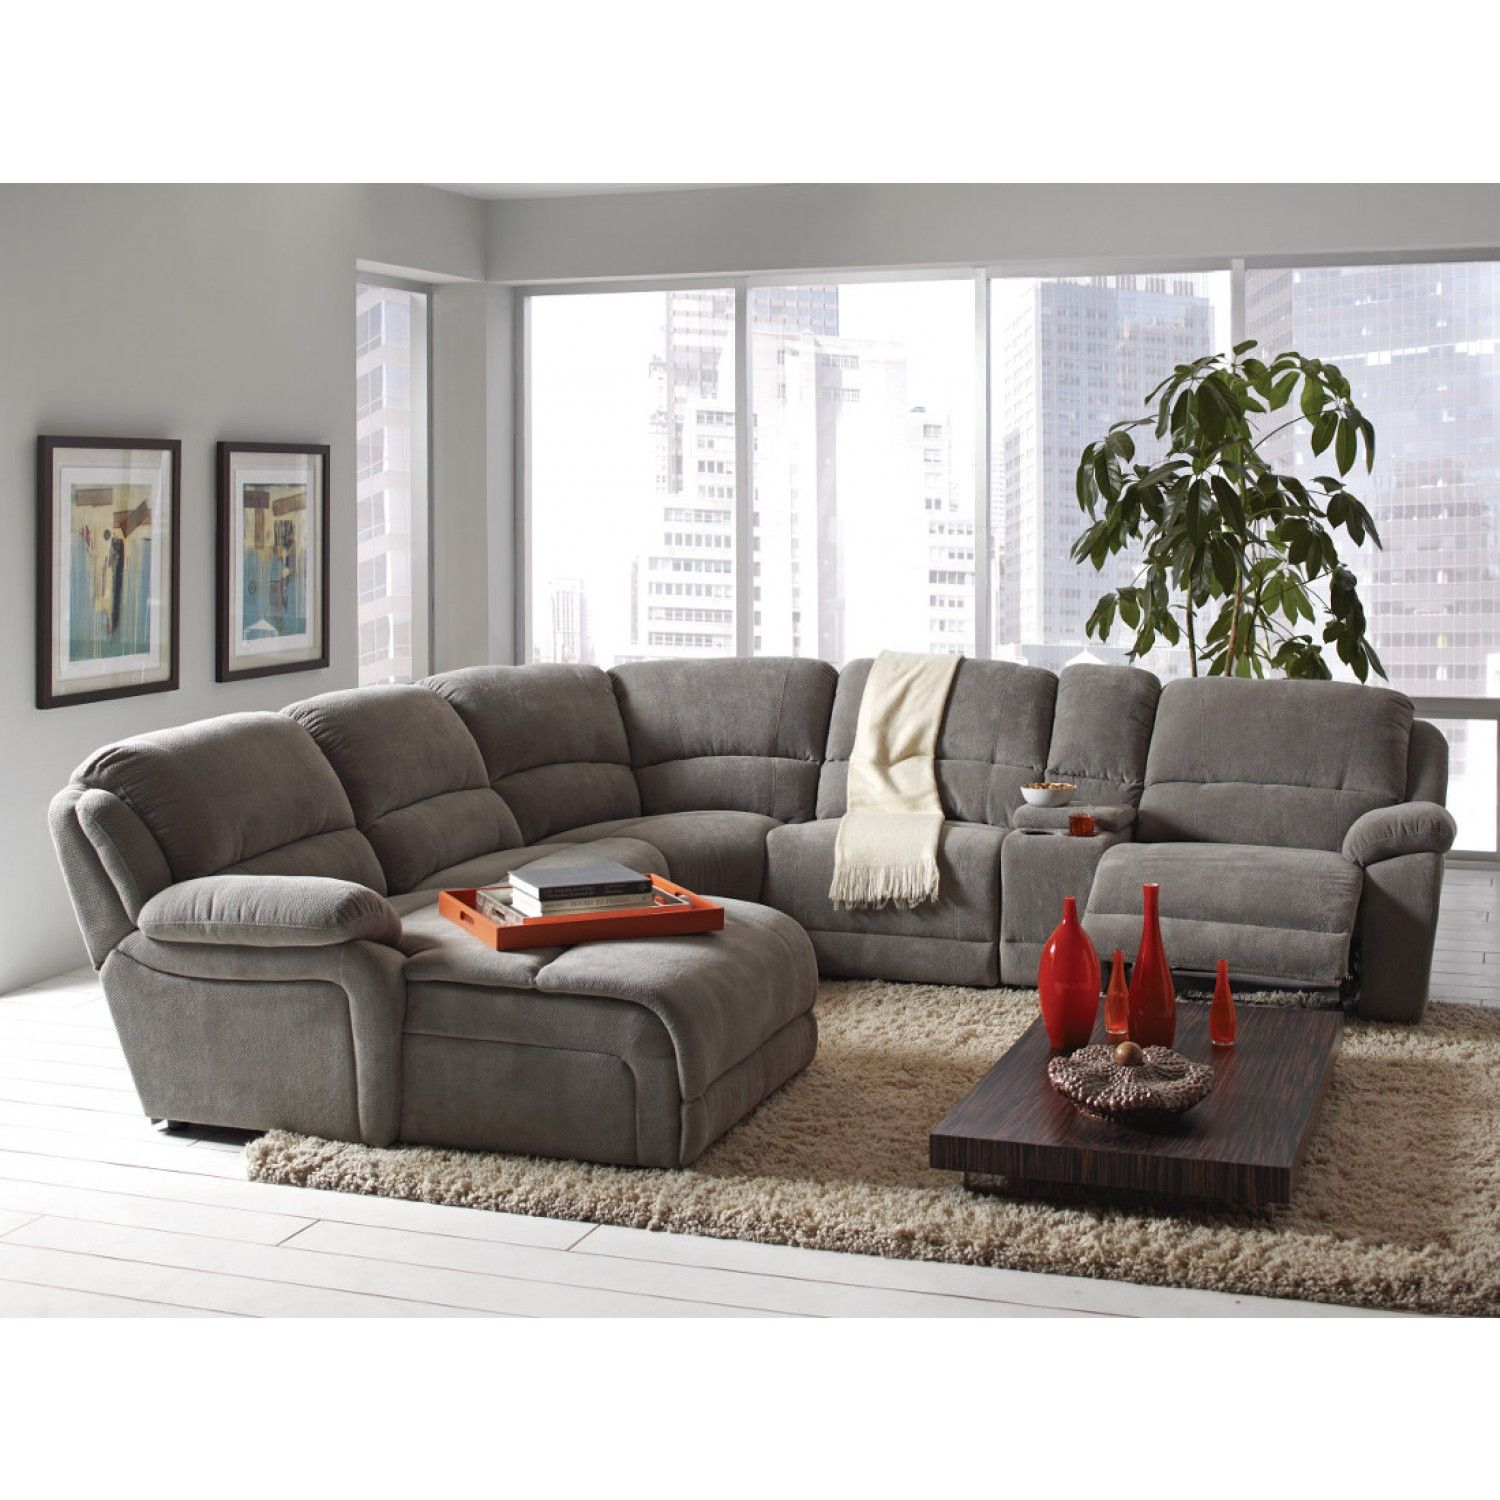 Coaster Mackenzie Silver 6-Piece Reclining Sectional Sofa ...